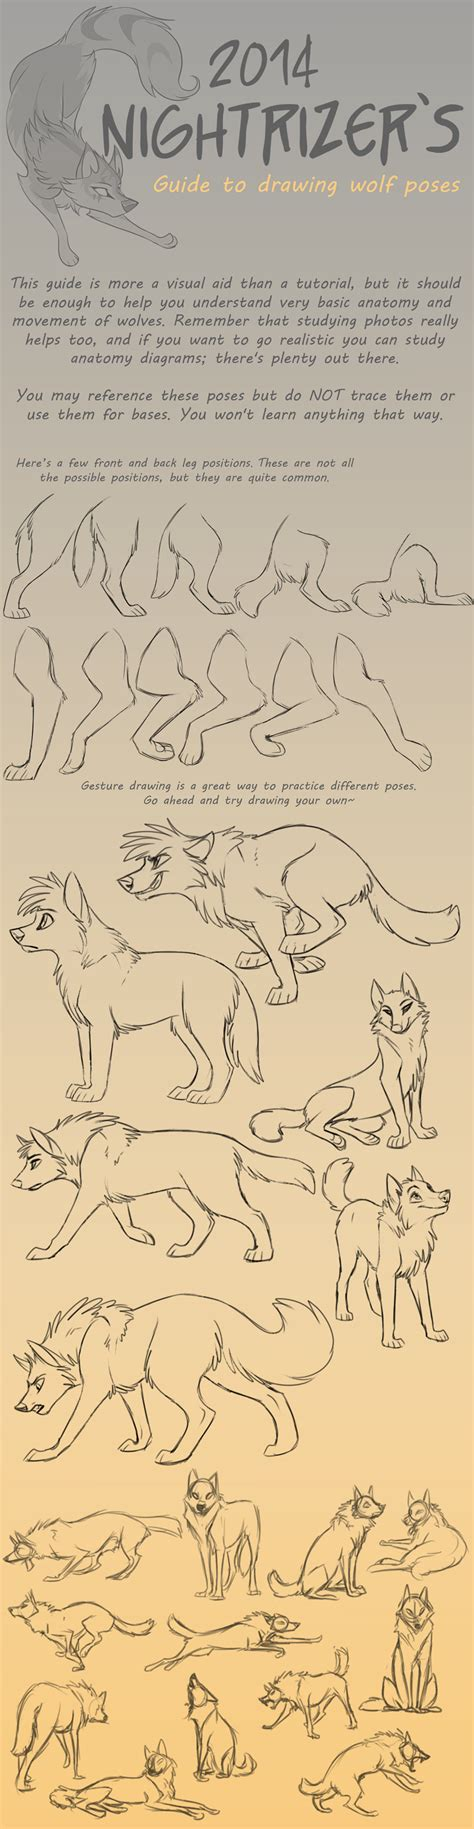 guide to drawing guide to drawing wolf poses by nightrizer on deviantart